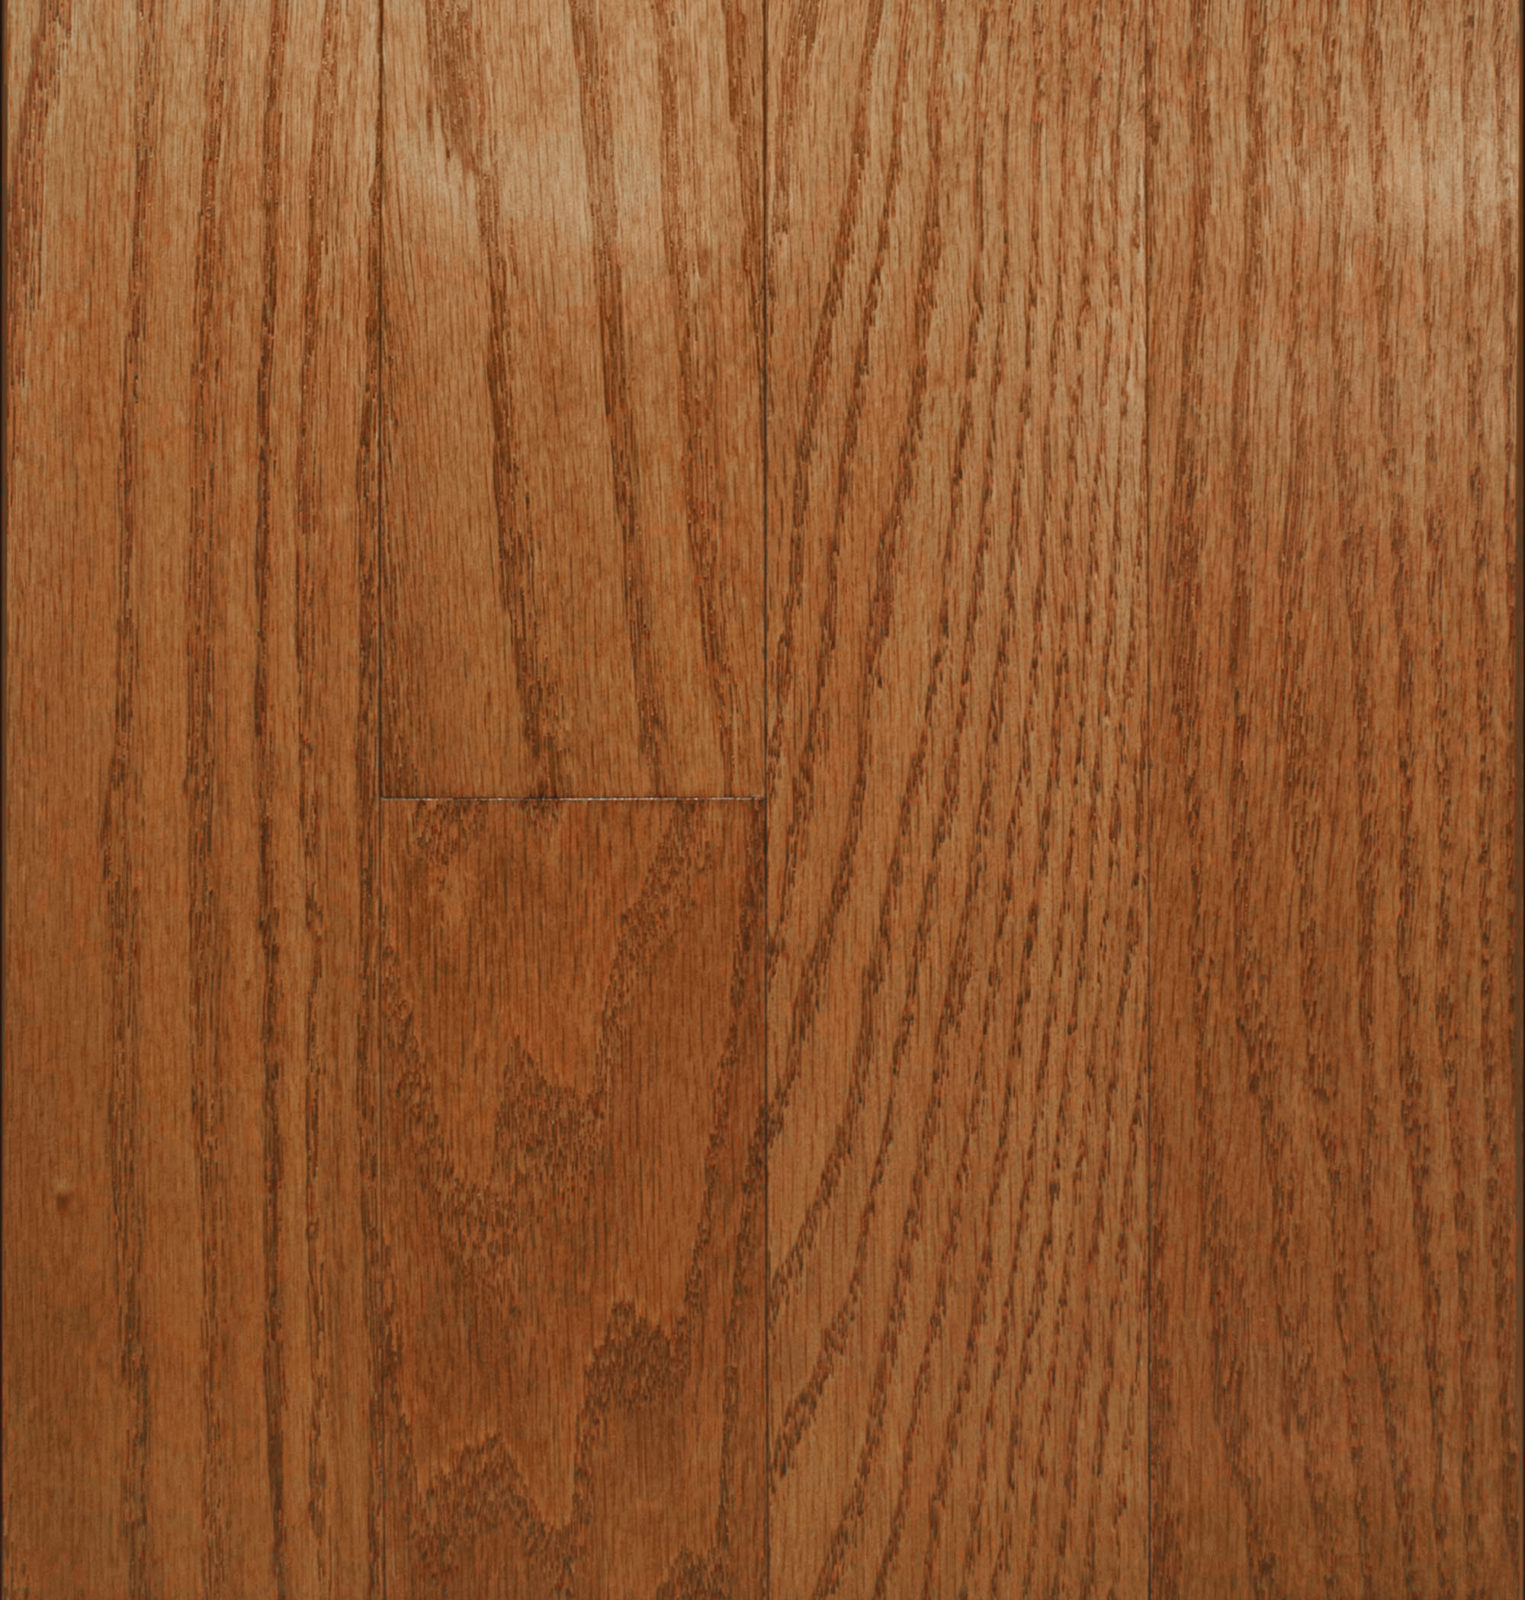 3 1 4 x 3 4 mohawk red oak winchester schillings for Solid oak wood flooring